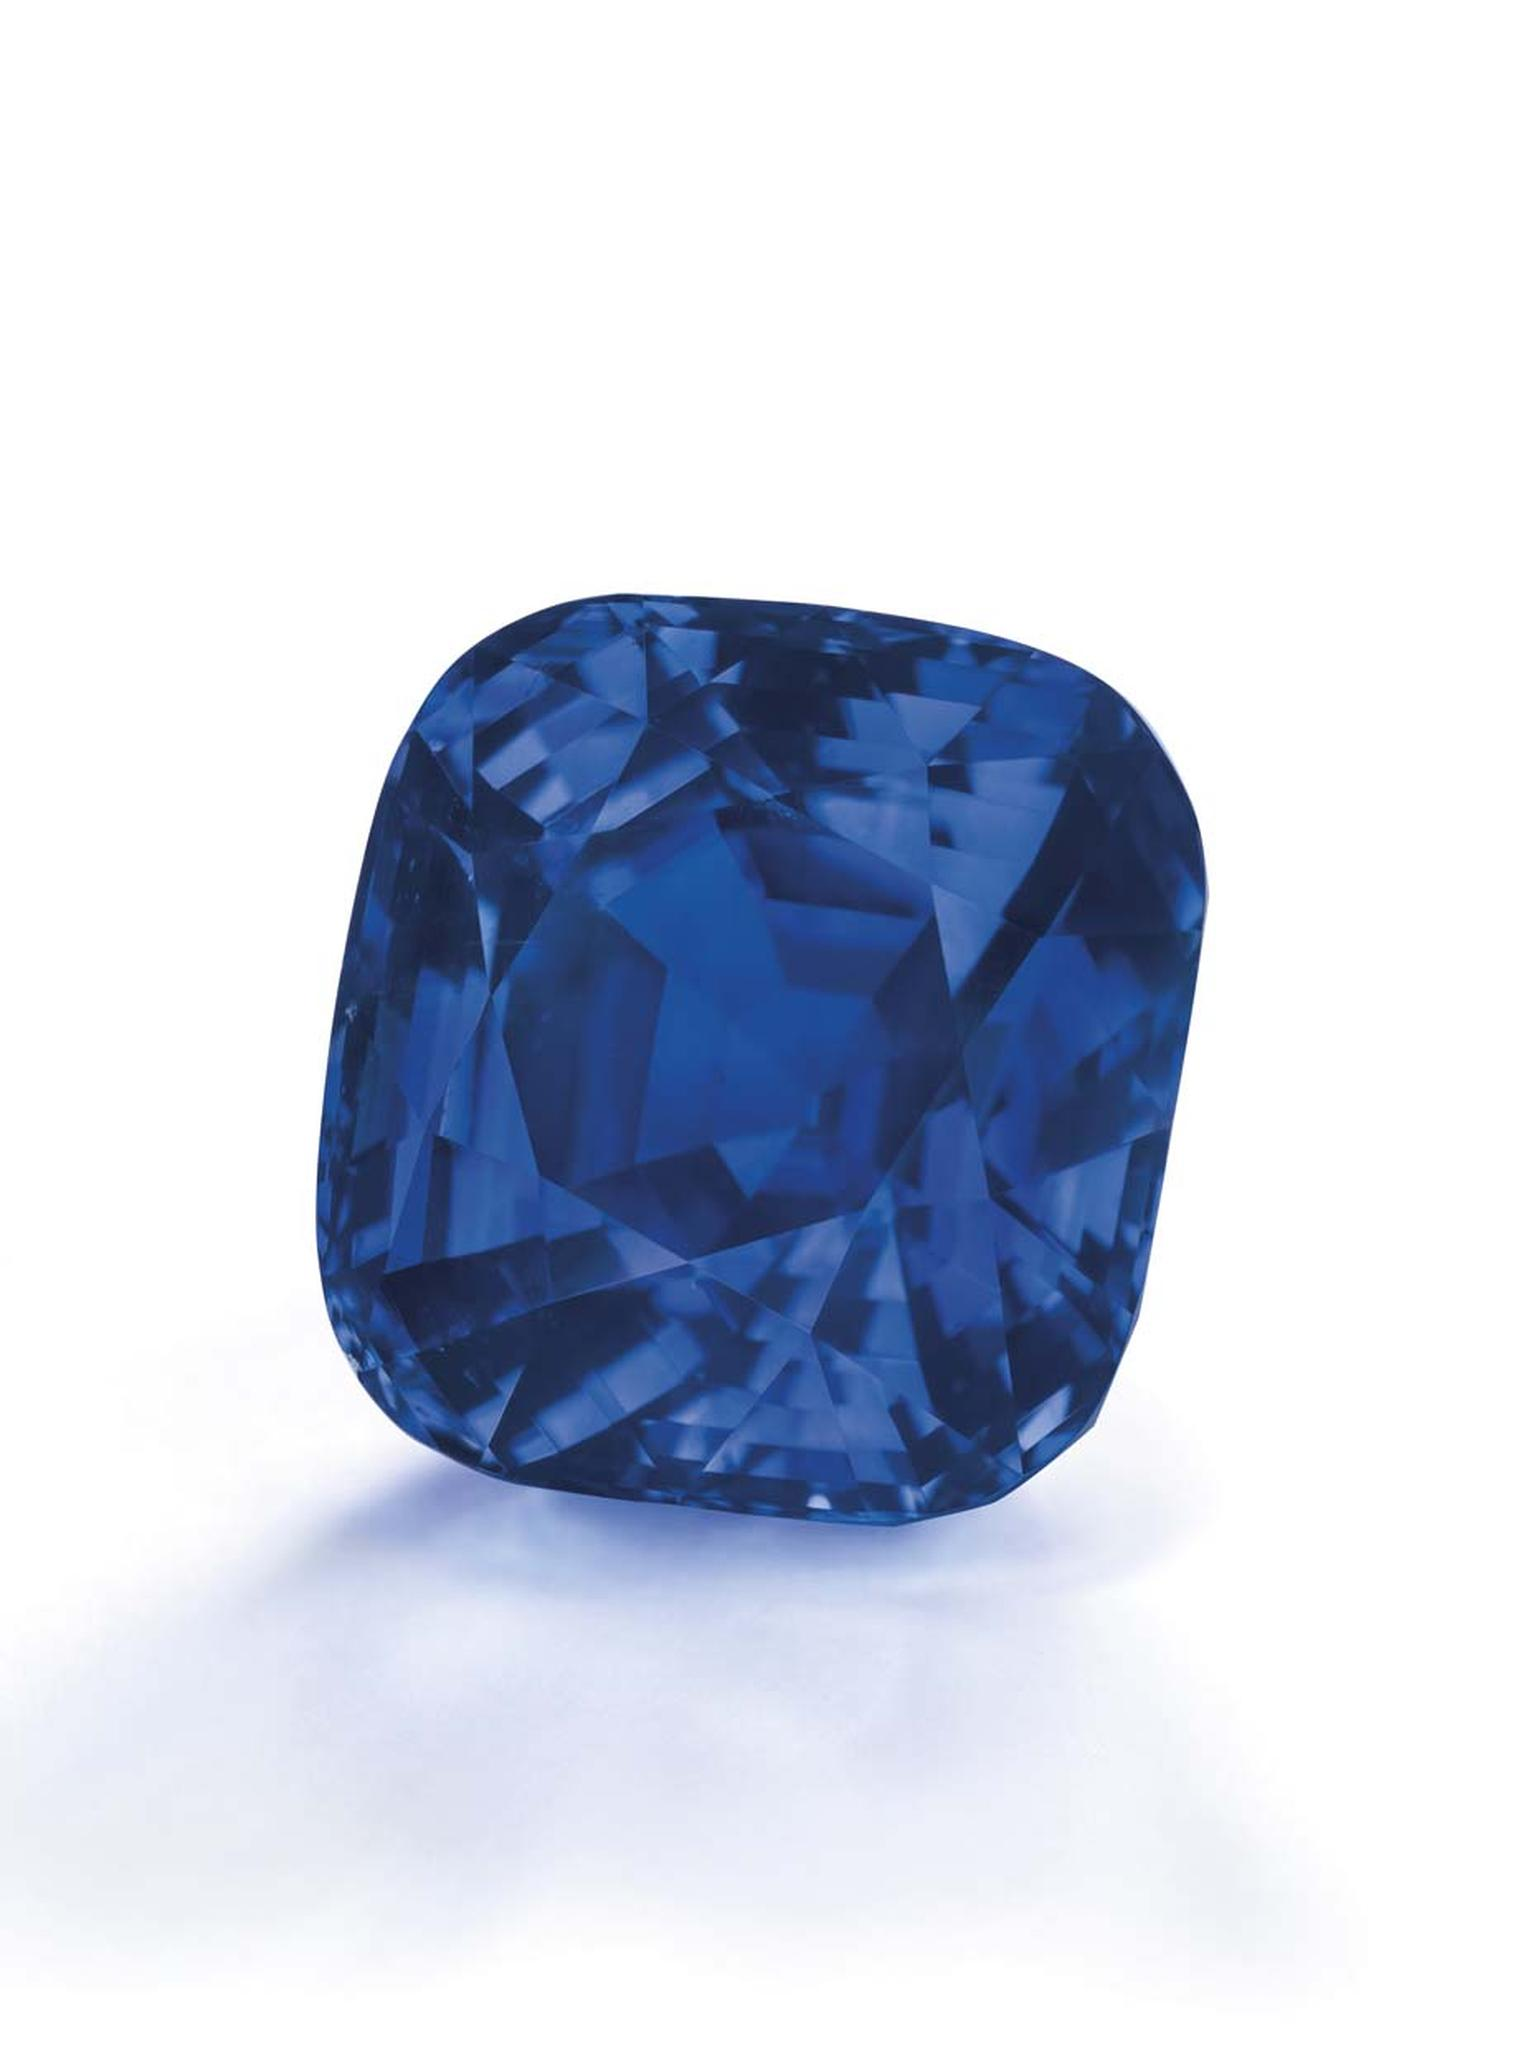 One of the top lots at Christie's Magnificent Jewels Sale in Geneva was this 35.09ct cushion-shaped Kashmir sapphire, which sold for $7.36 million or $209,689 per carat, making it the most valuable Kashmir sapphire ever sold at auction.